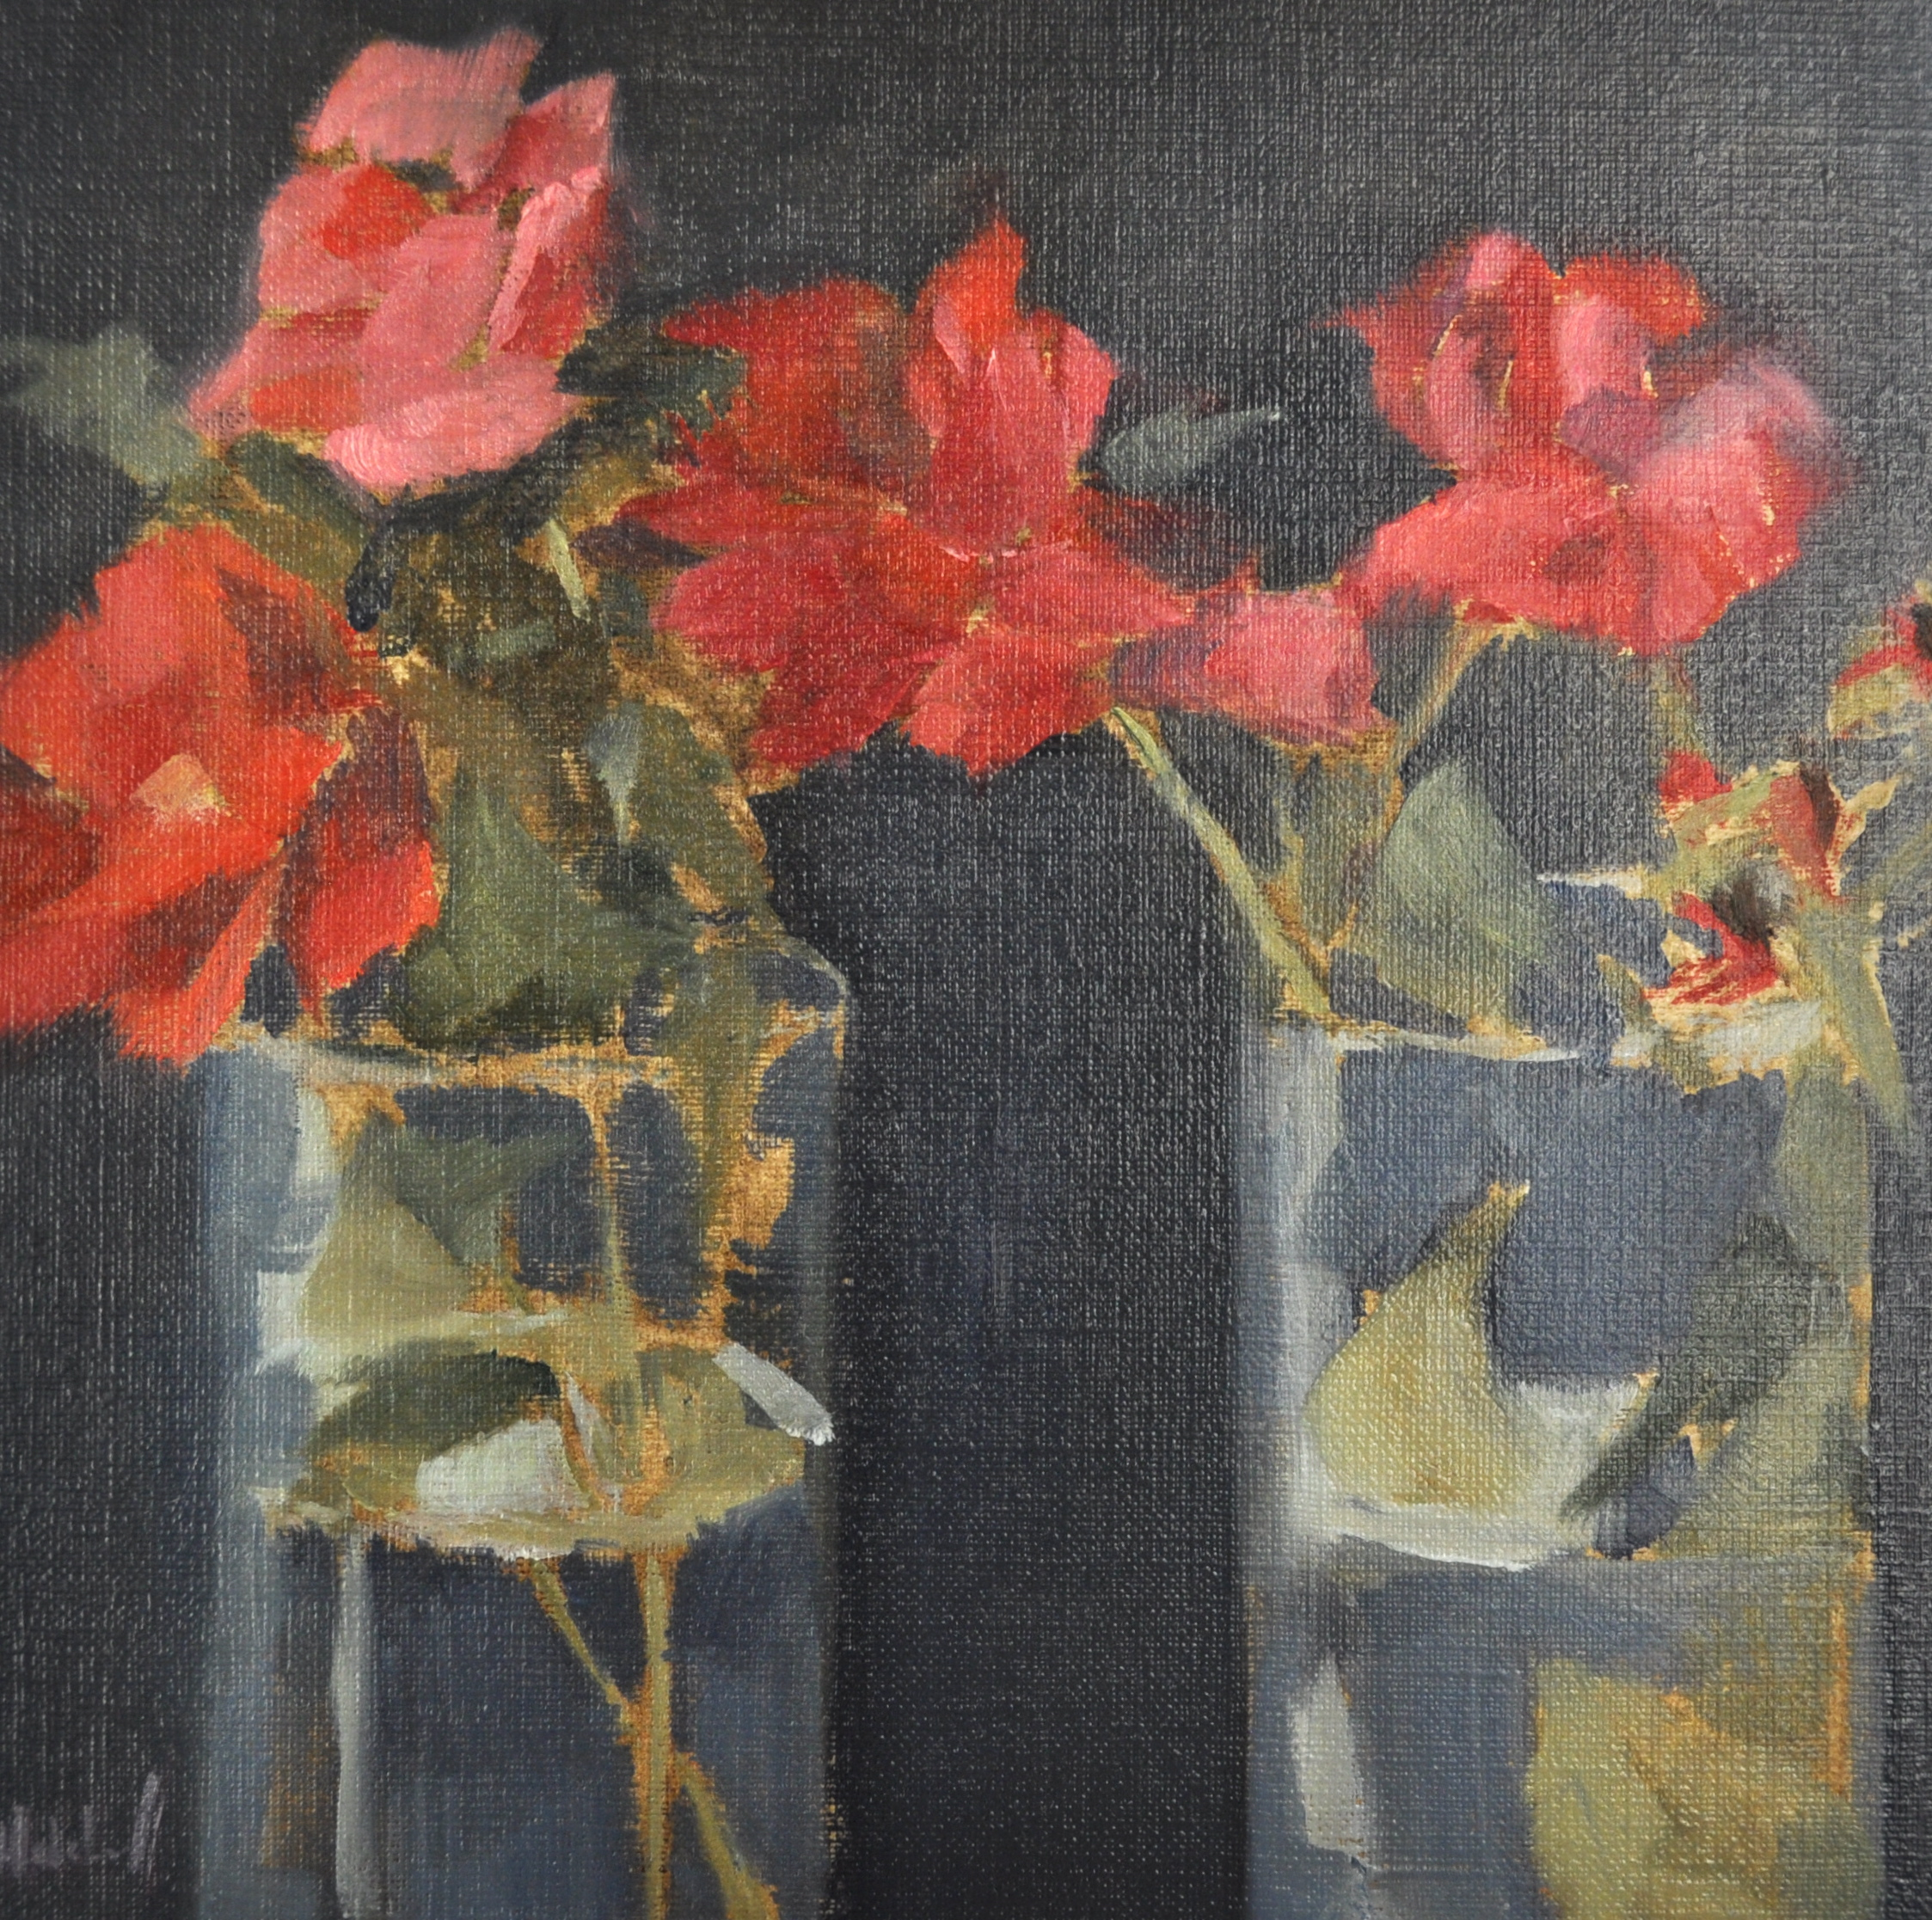 Glass and Rose, Oil on Linen, 8 x 8, sold